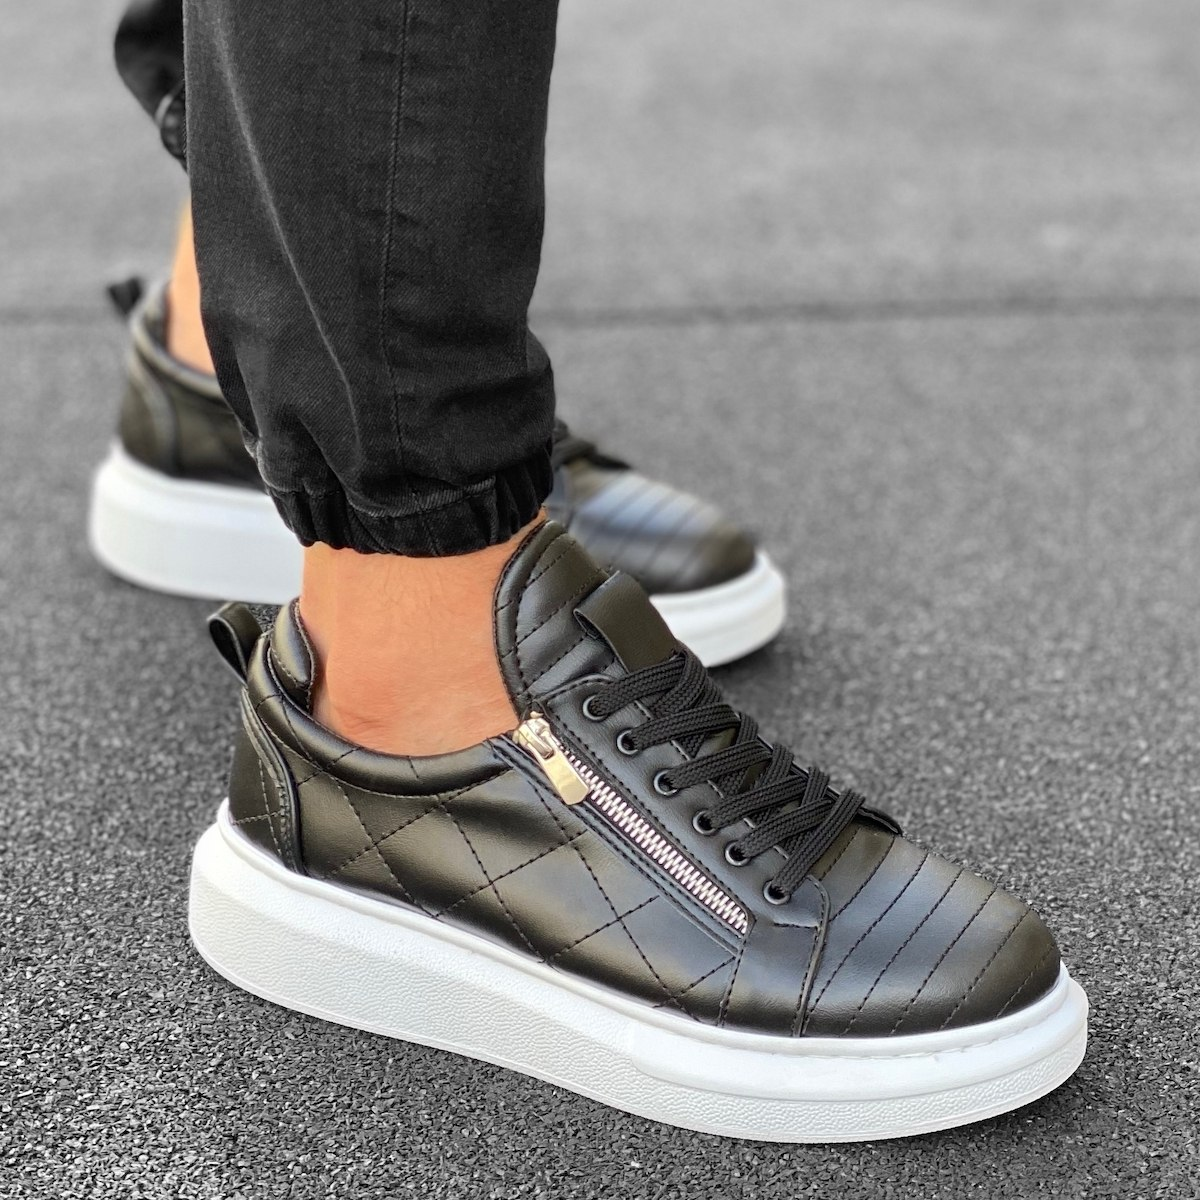 Casual Sneakers With Stitch and Side-zip Design in Black&White